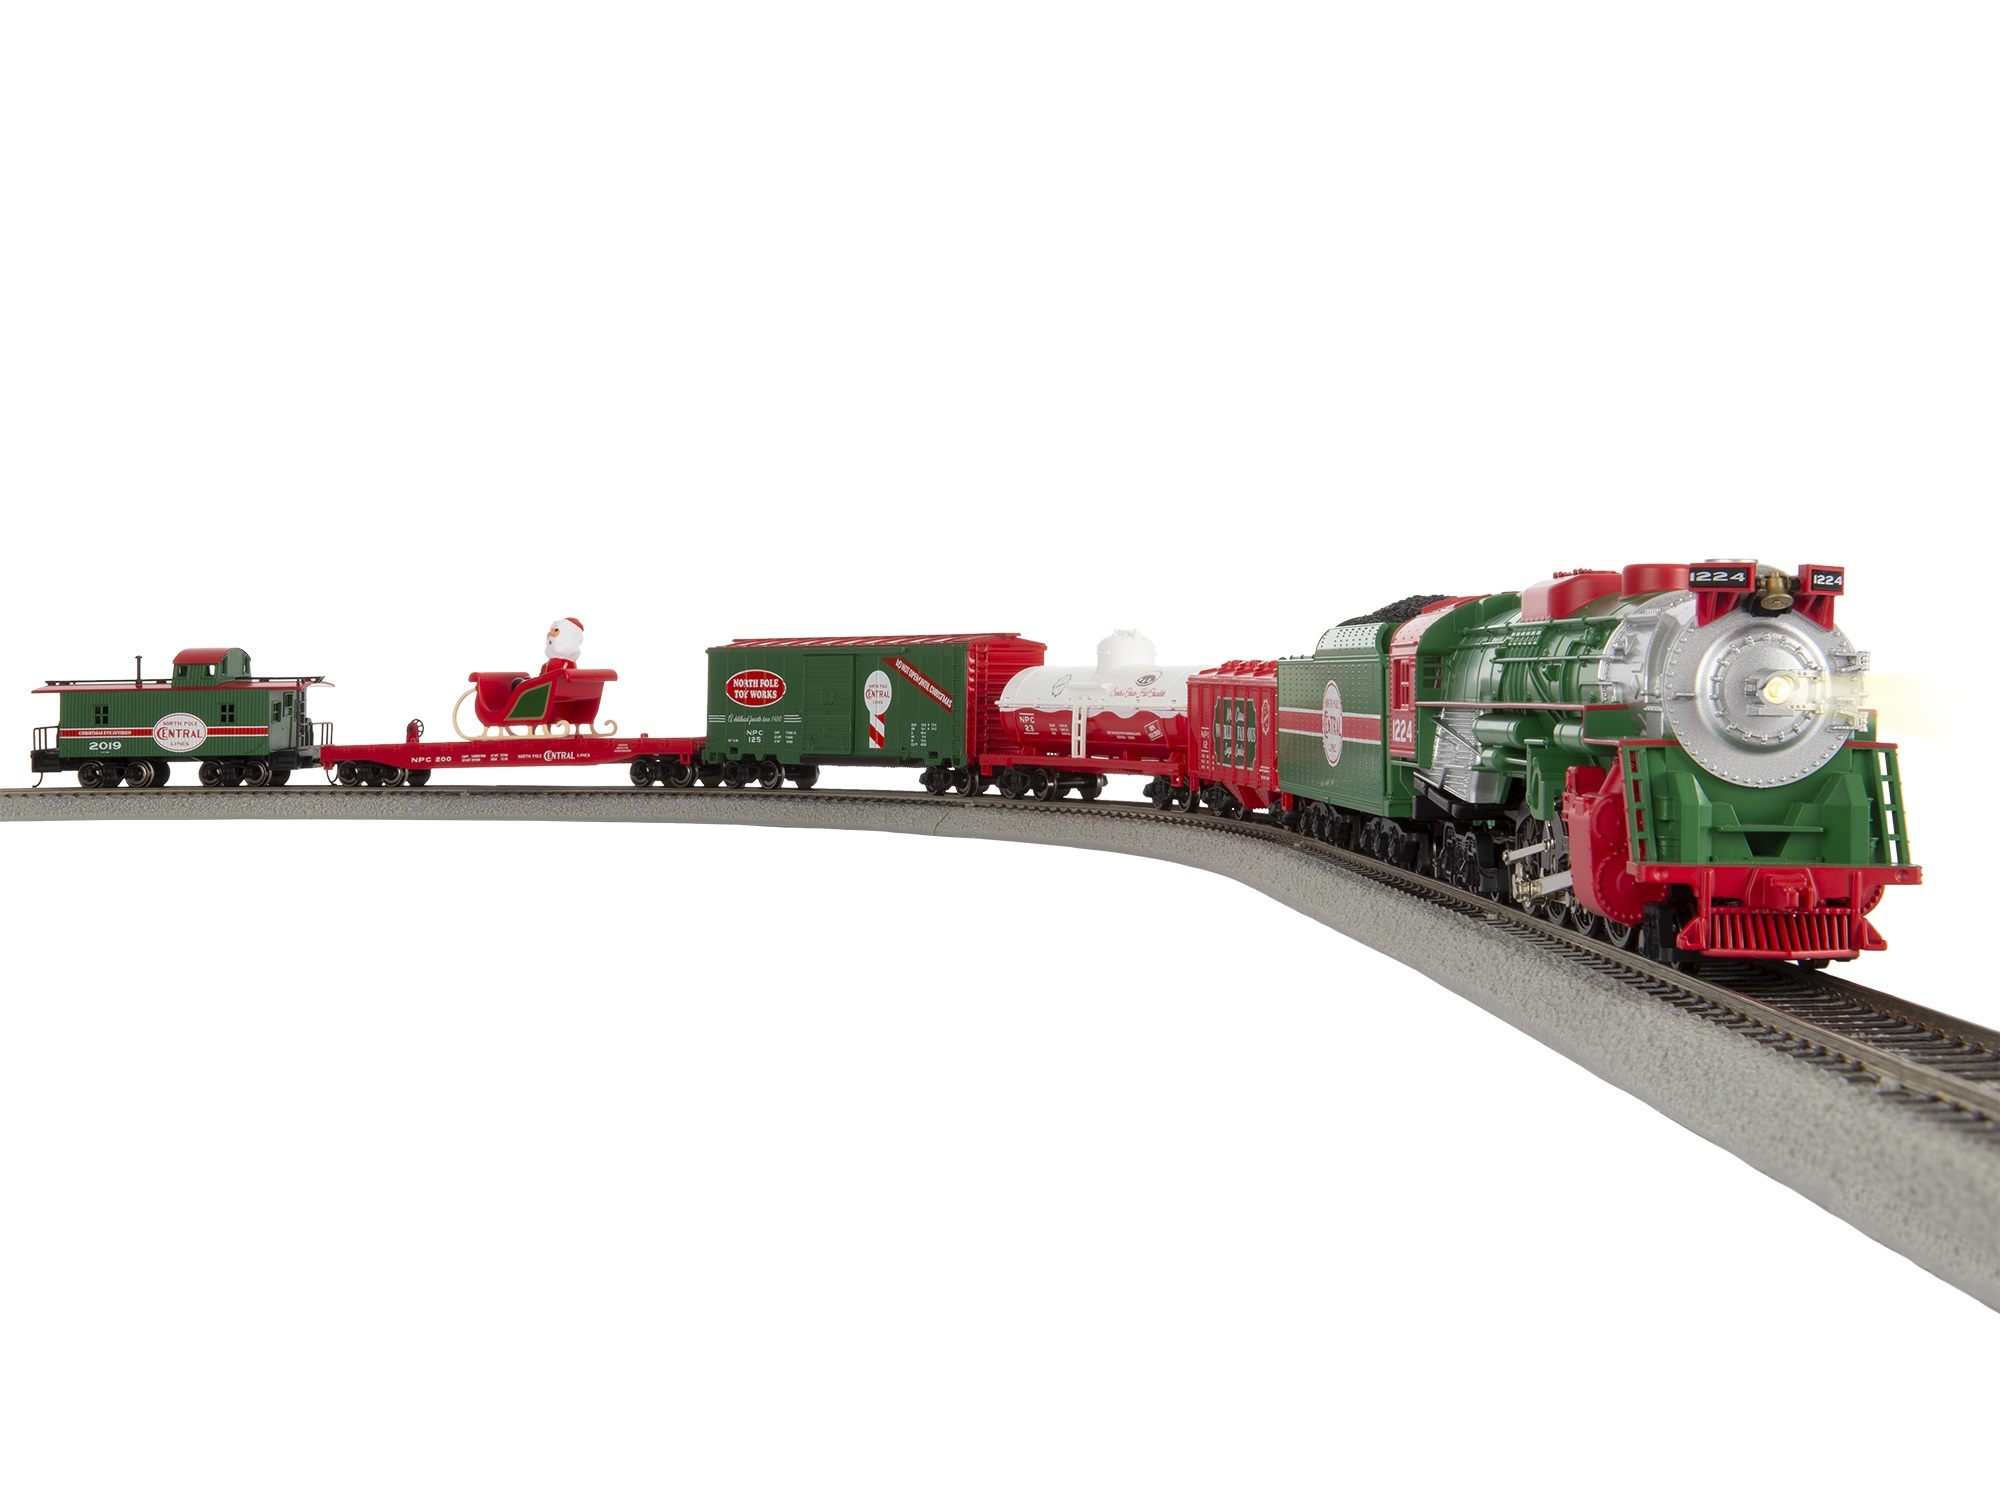 Lionel 1951020 HO North Pole Central Freight RailSounds and LionChief Control